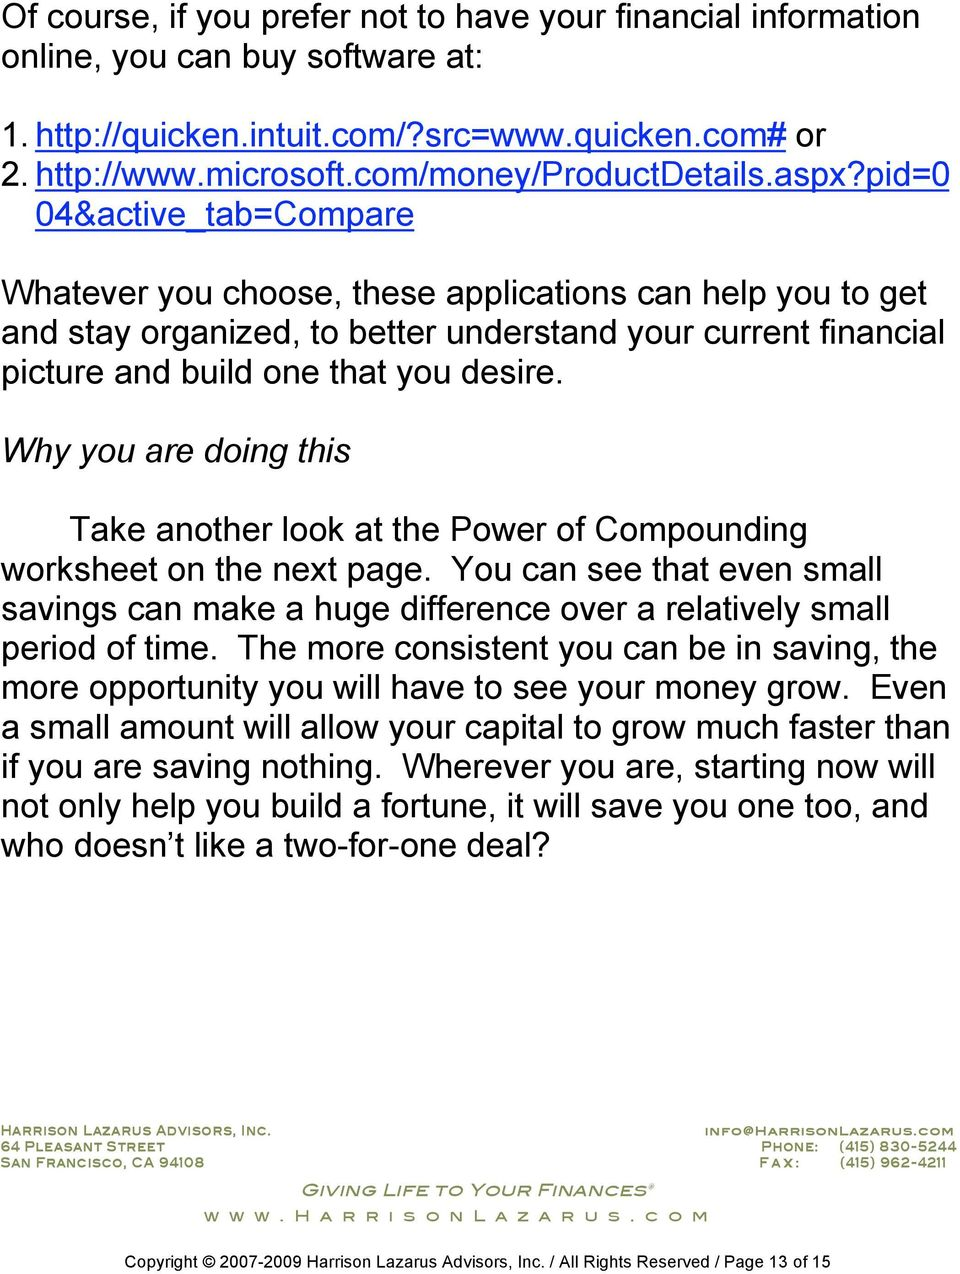 Why you are doing this Take another look at the Power of Compounding worksheet on the next page. You can see that even small savings can make a huge difference over a relatively small period of time.